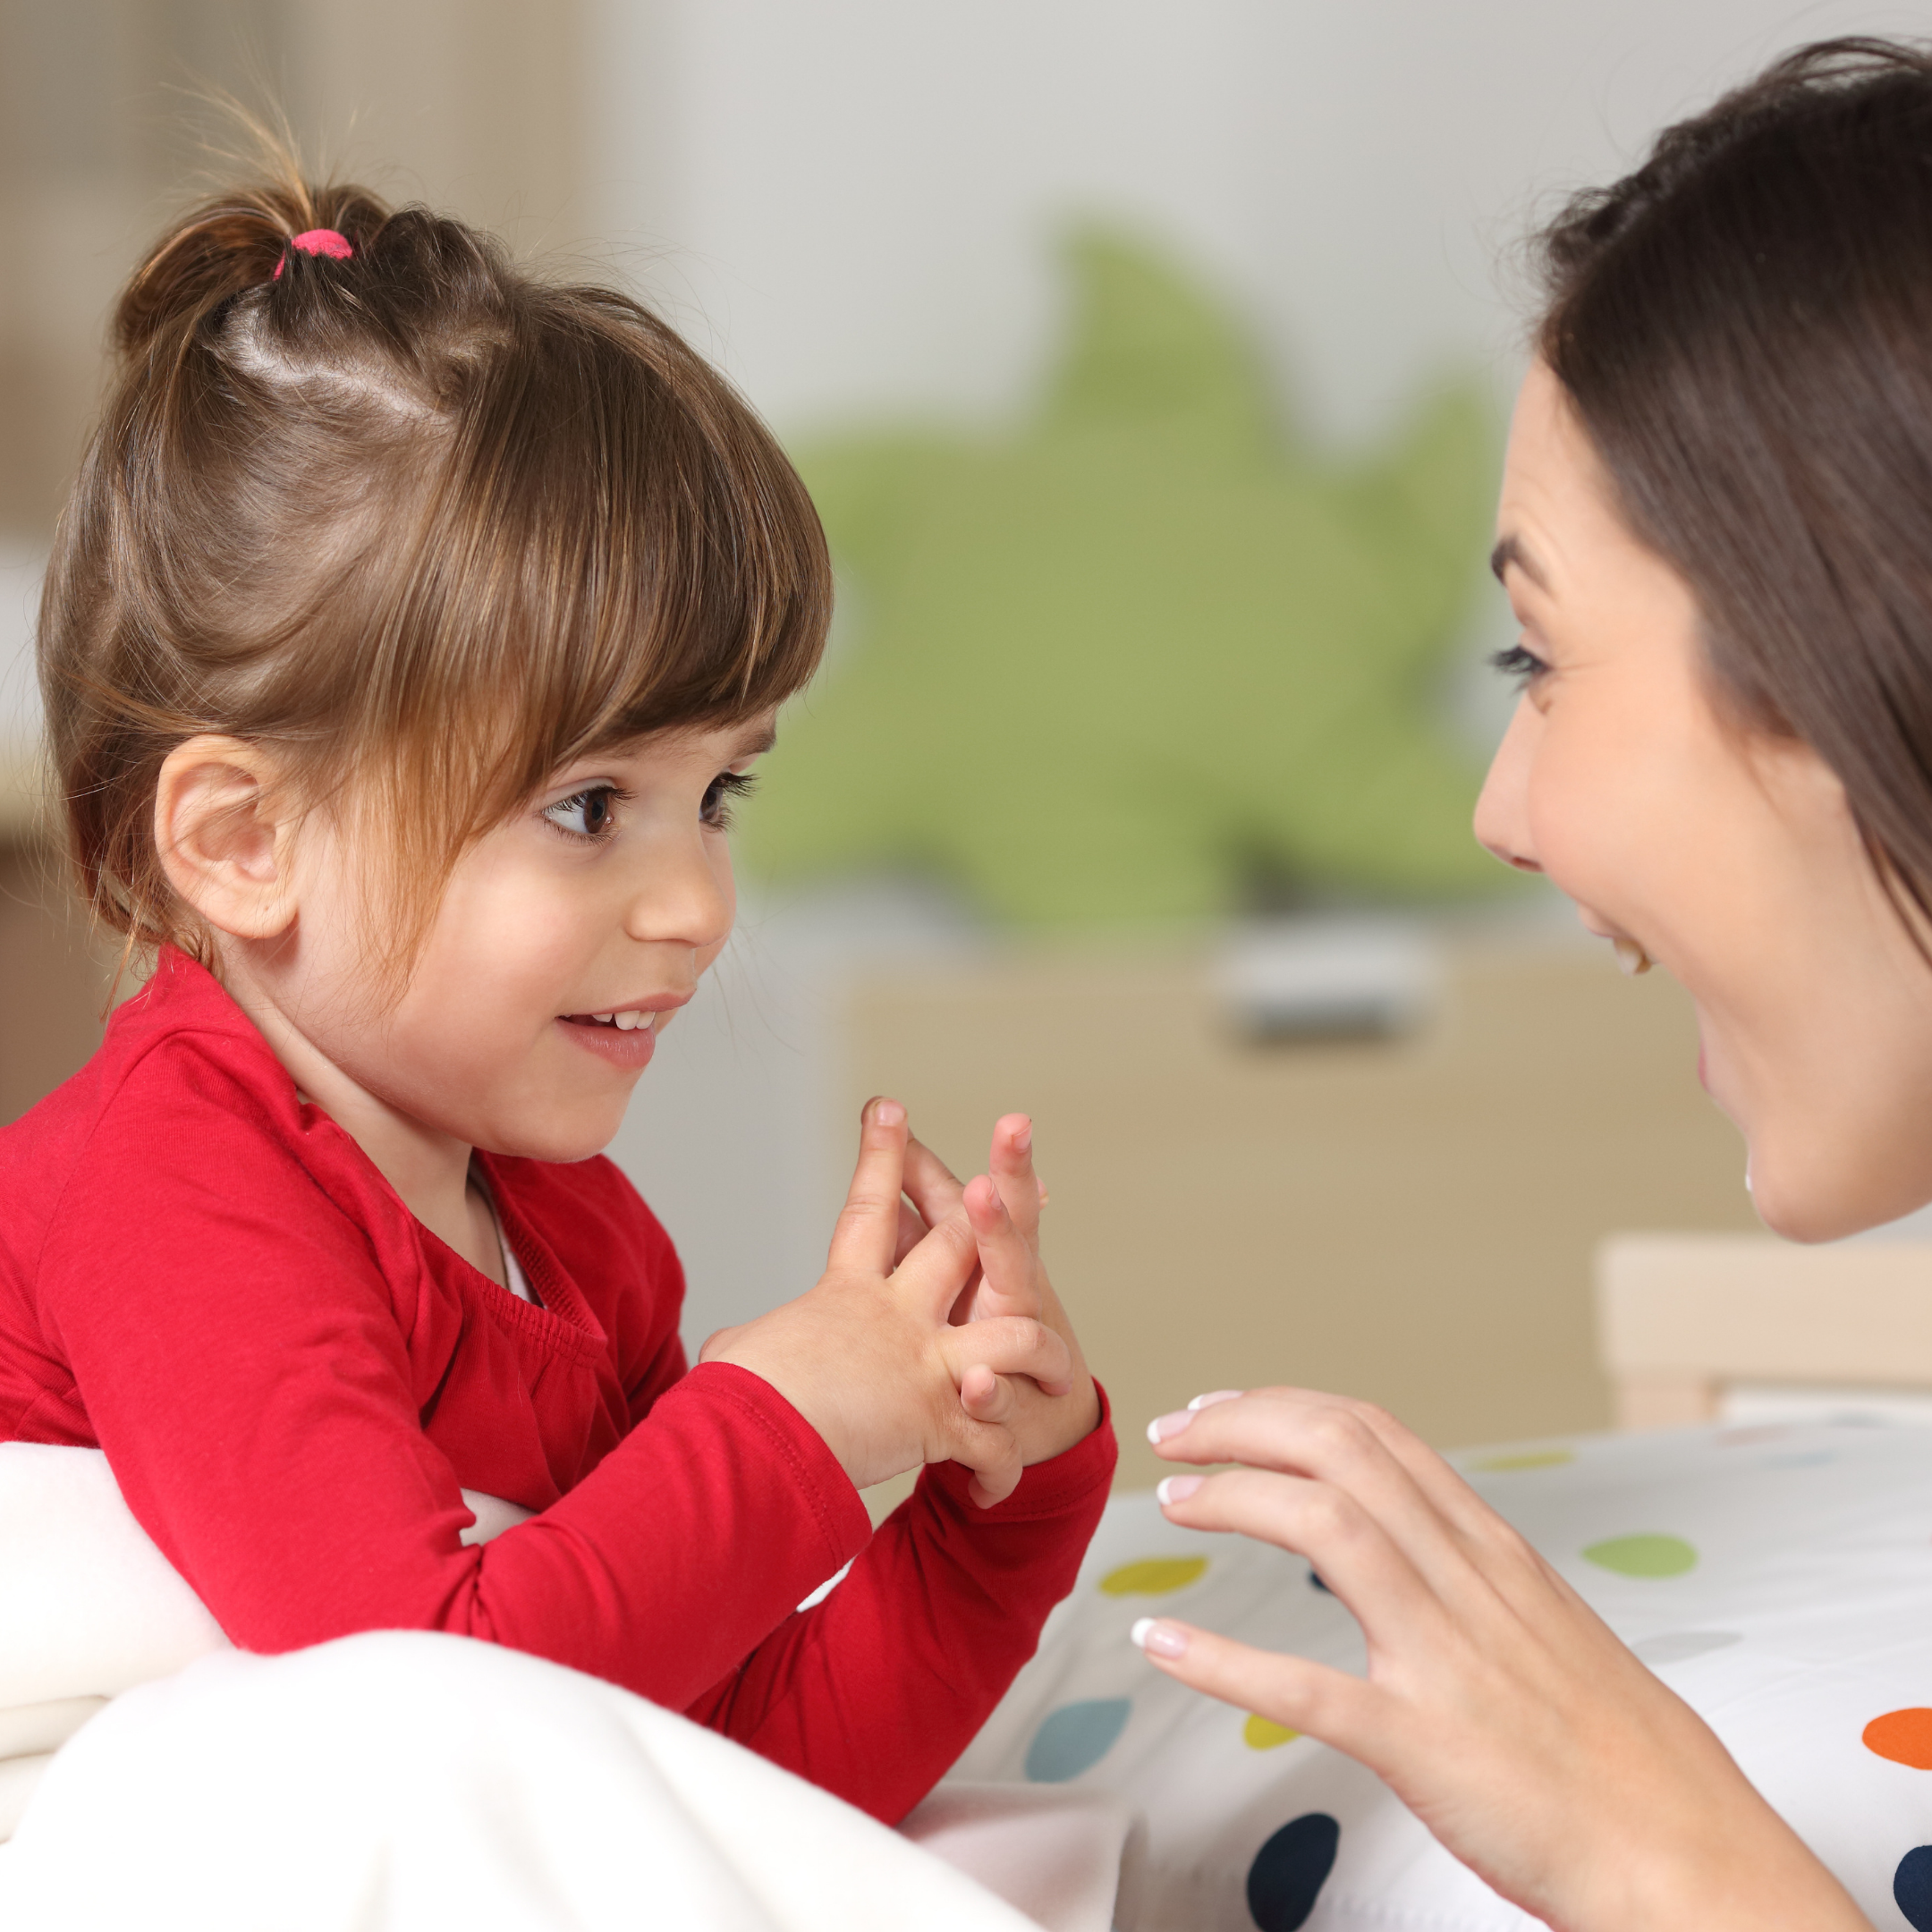 Little girl talking with mother in bed